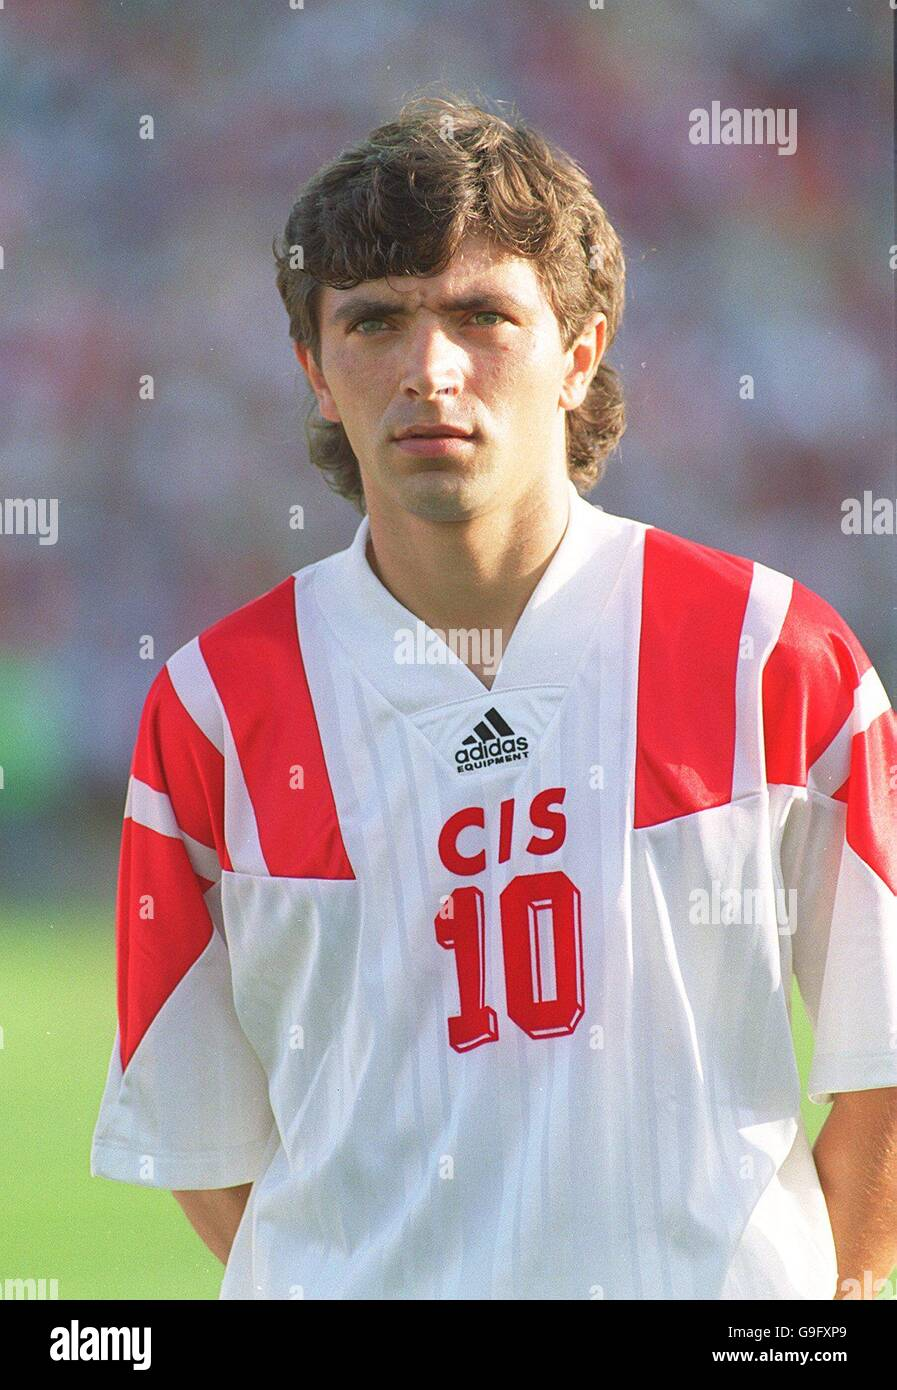 Football player Igor Dobrovolsky: biography, photos and interesting facts 28